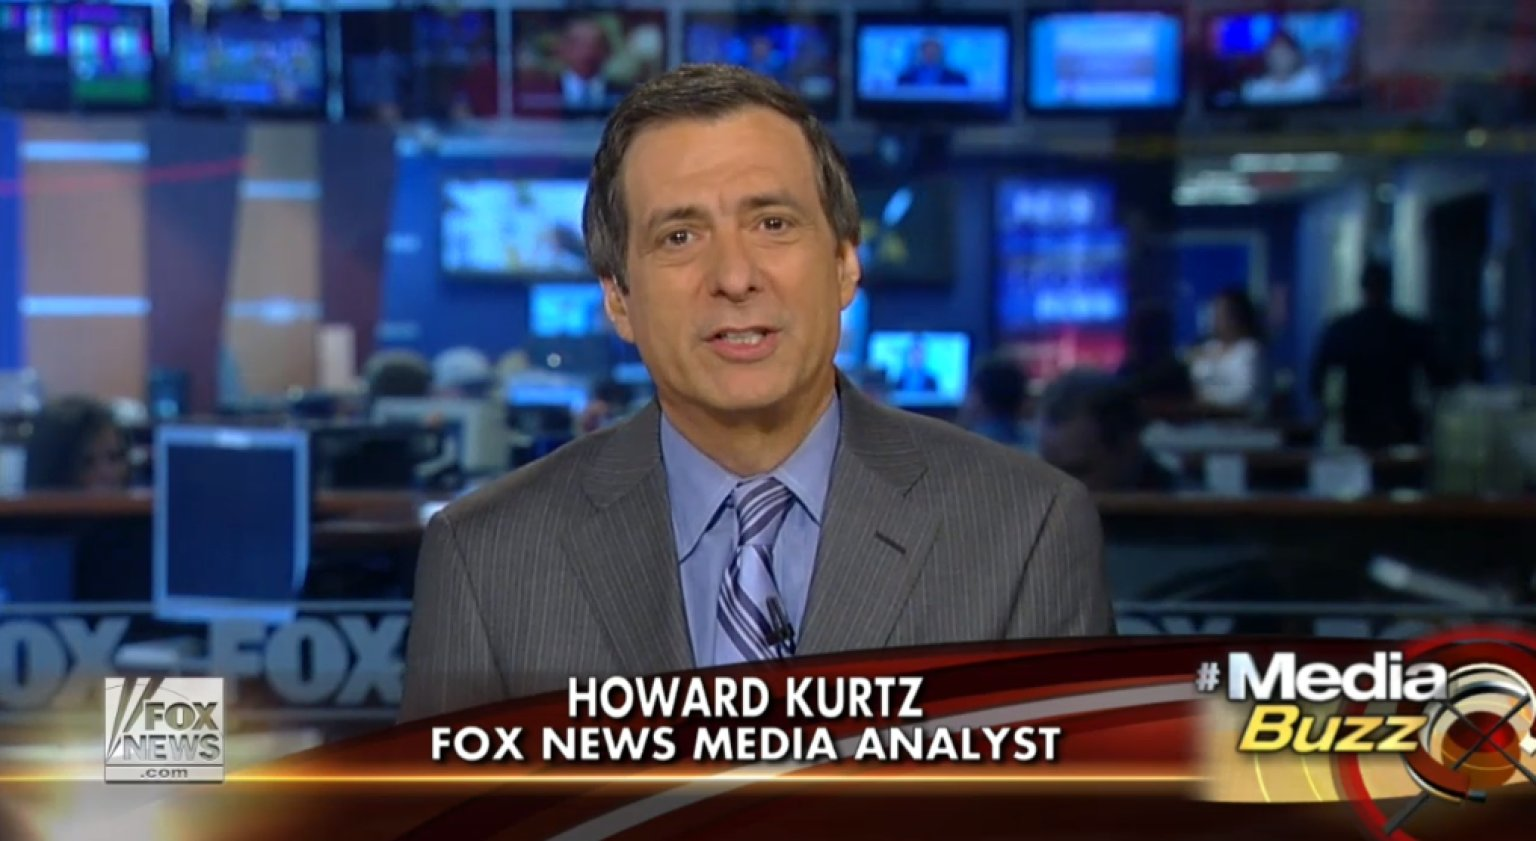 Fox News Mistakenly Posts Graphic Showing it's Least To Be Trusted